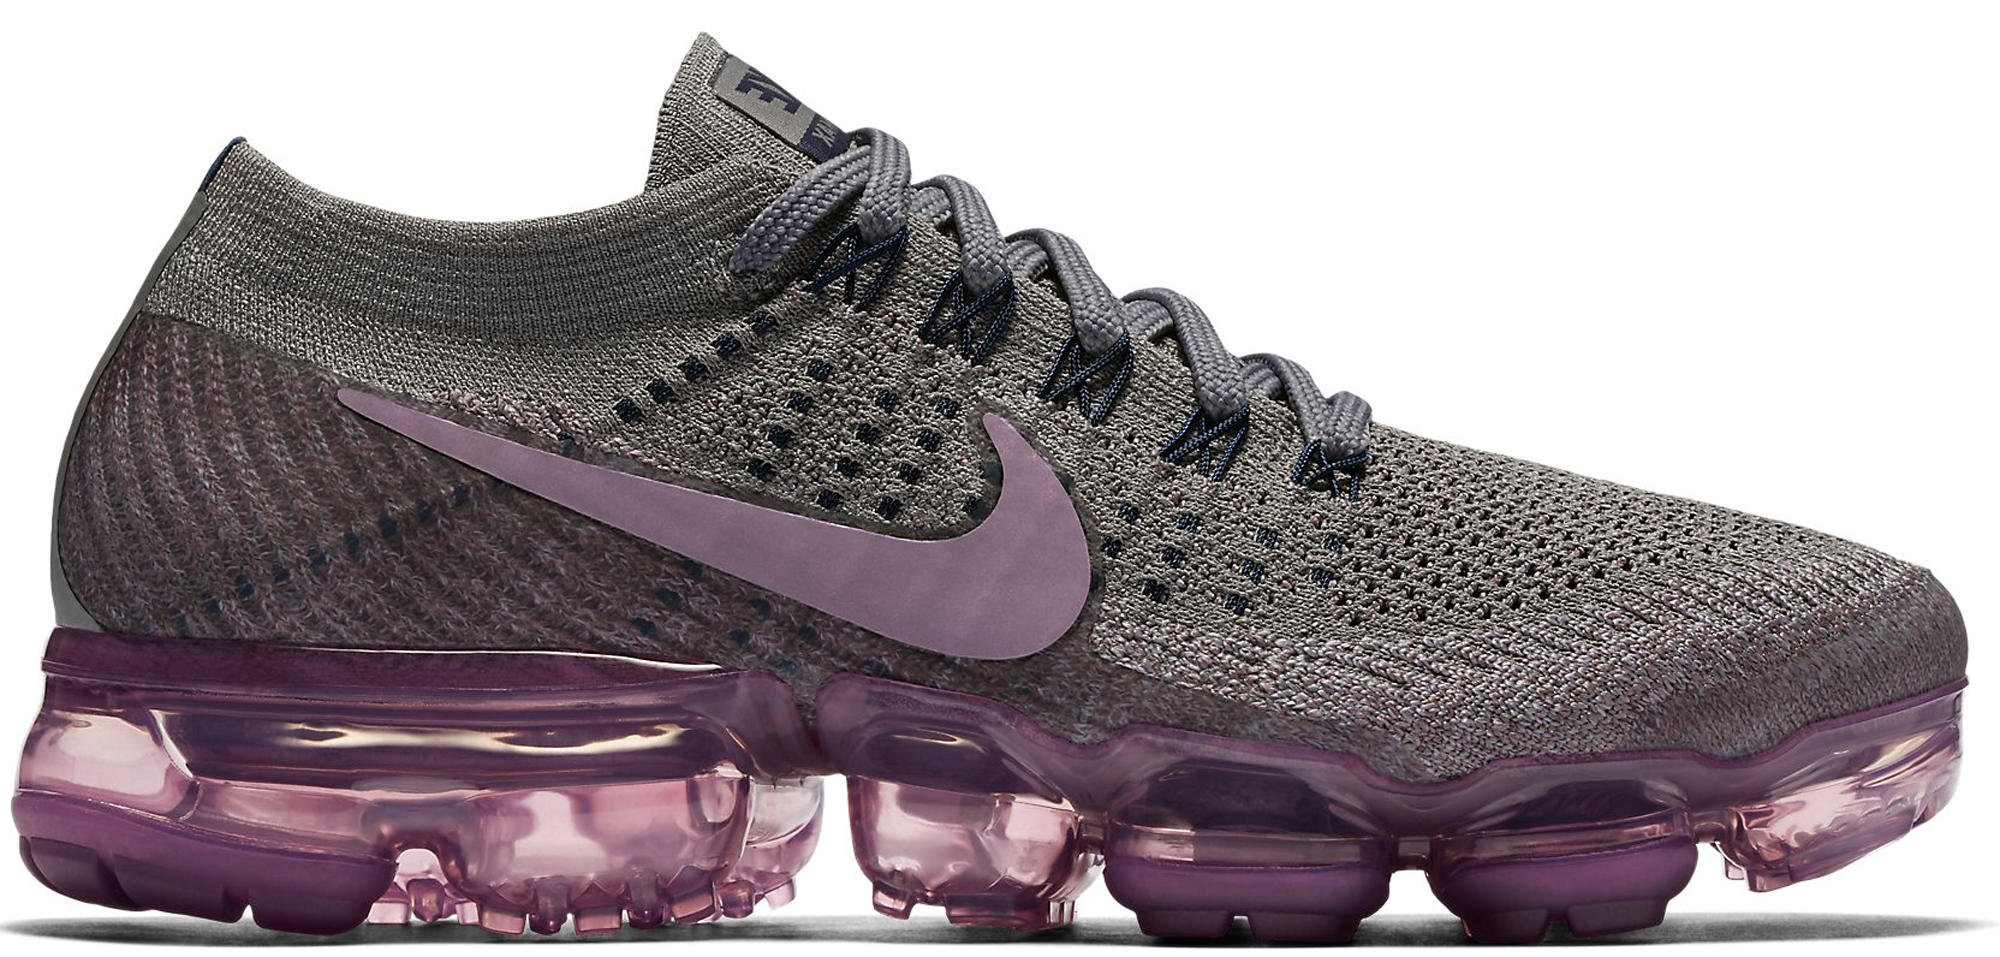 premium selection c5c33 a363e Women's Nike Air VaporMax Tea Berry - StockX News